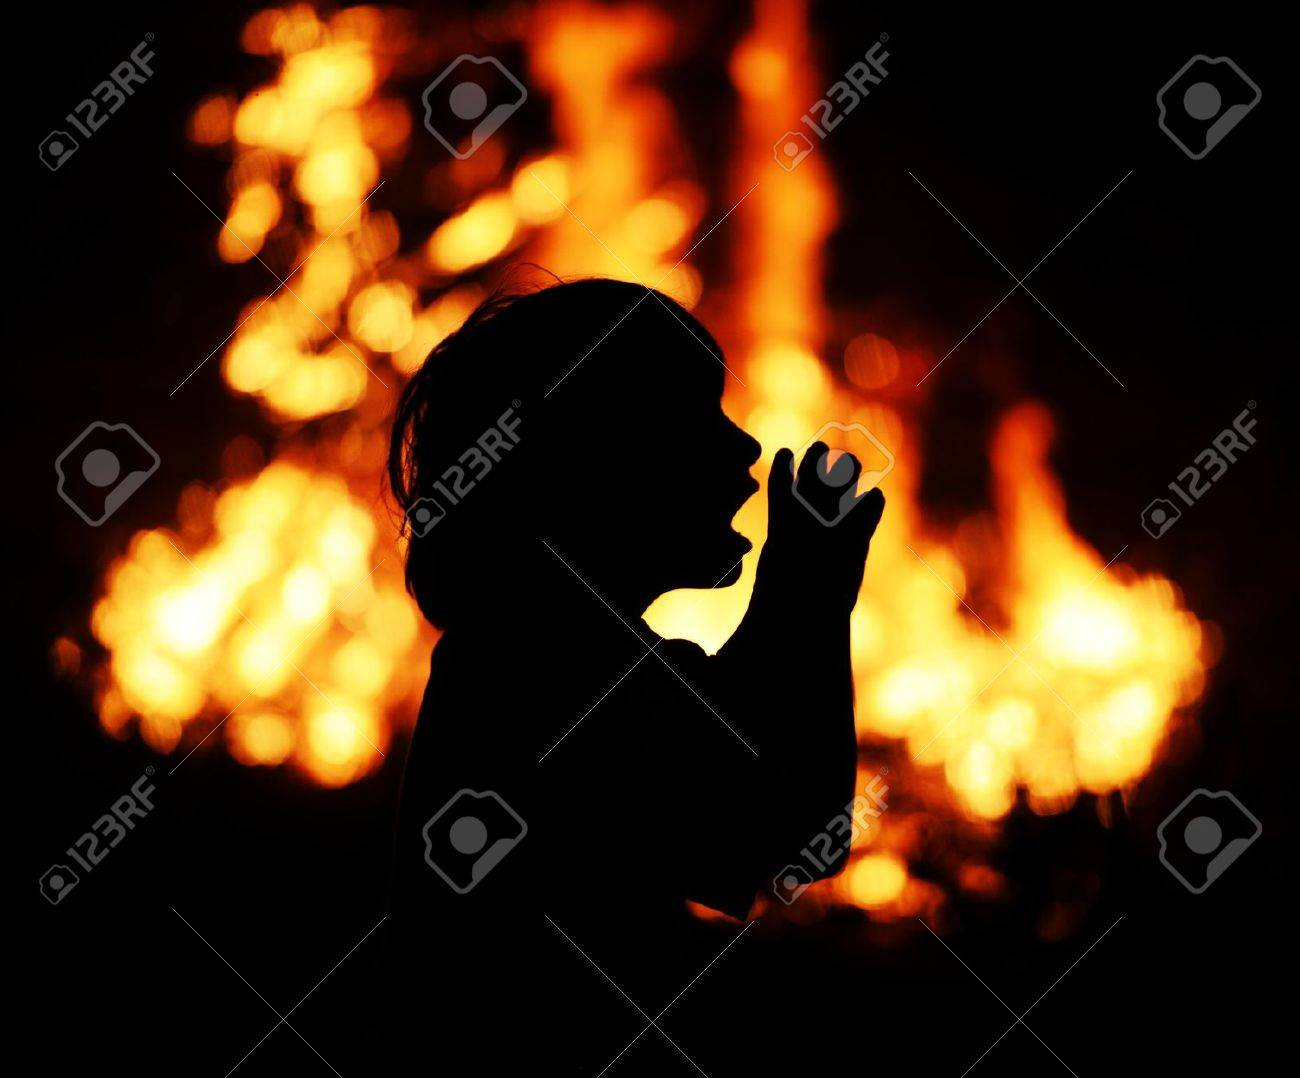 Calling for help for wildfire Stock Photo - 15634598